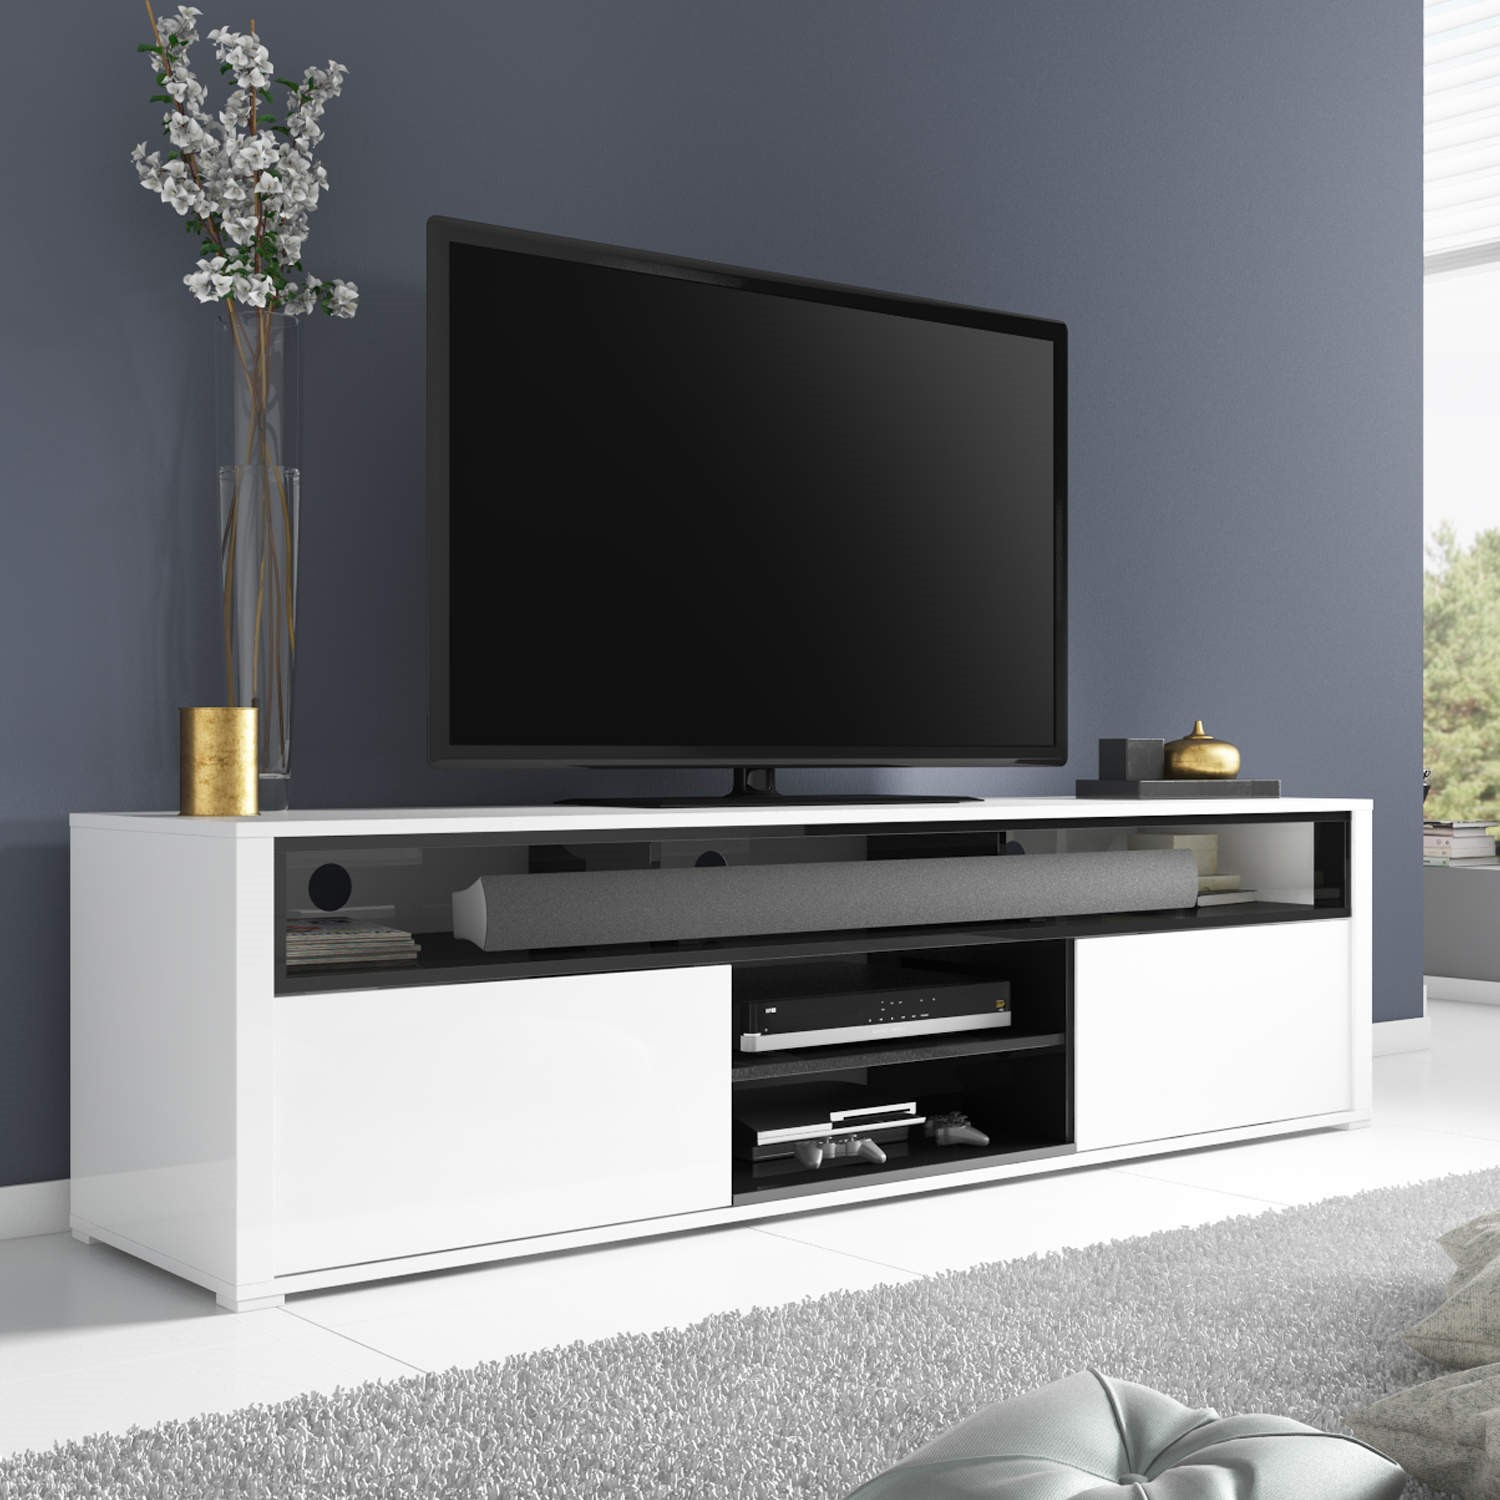 TV Units, Stands & Cabinets   Furniture123